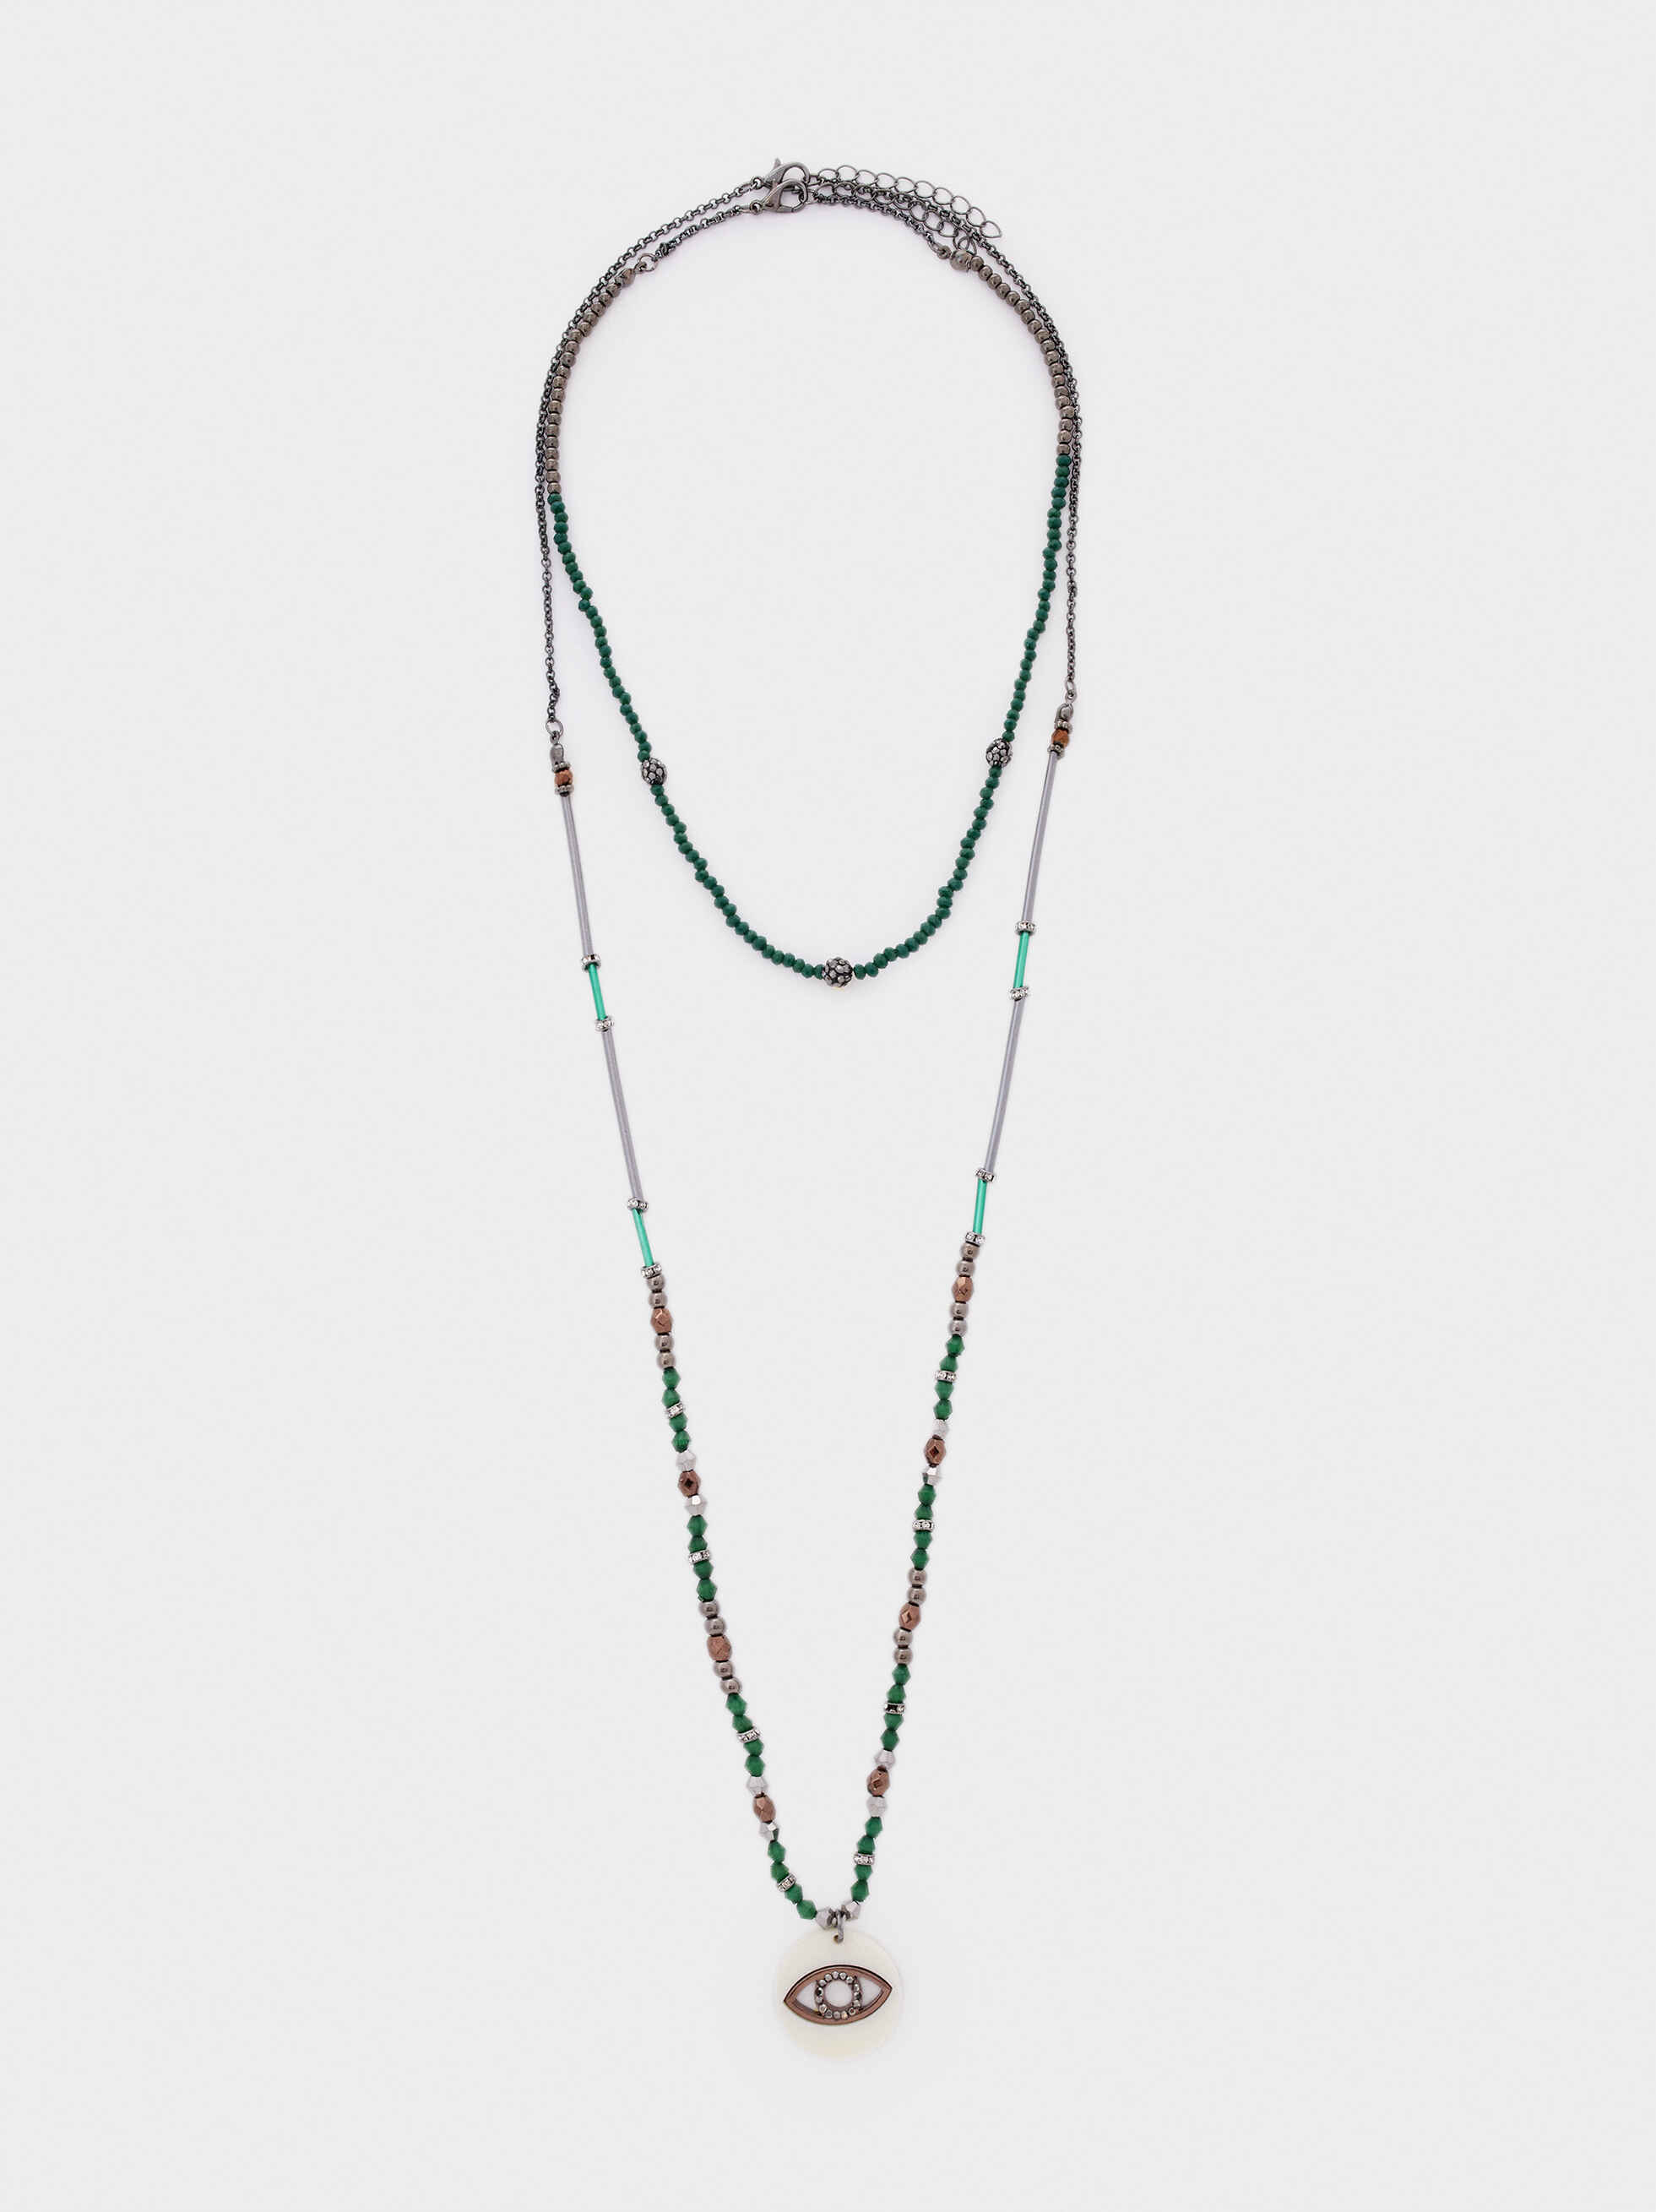 Long Necklace With Eye Charm And Multicolour Crystals, Green, hi-res